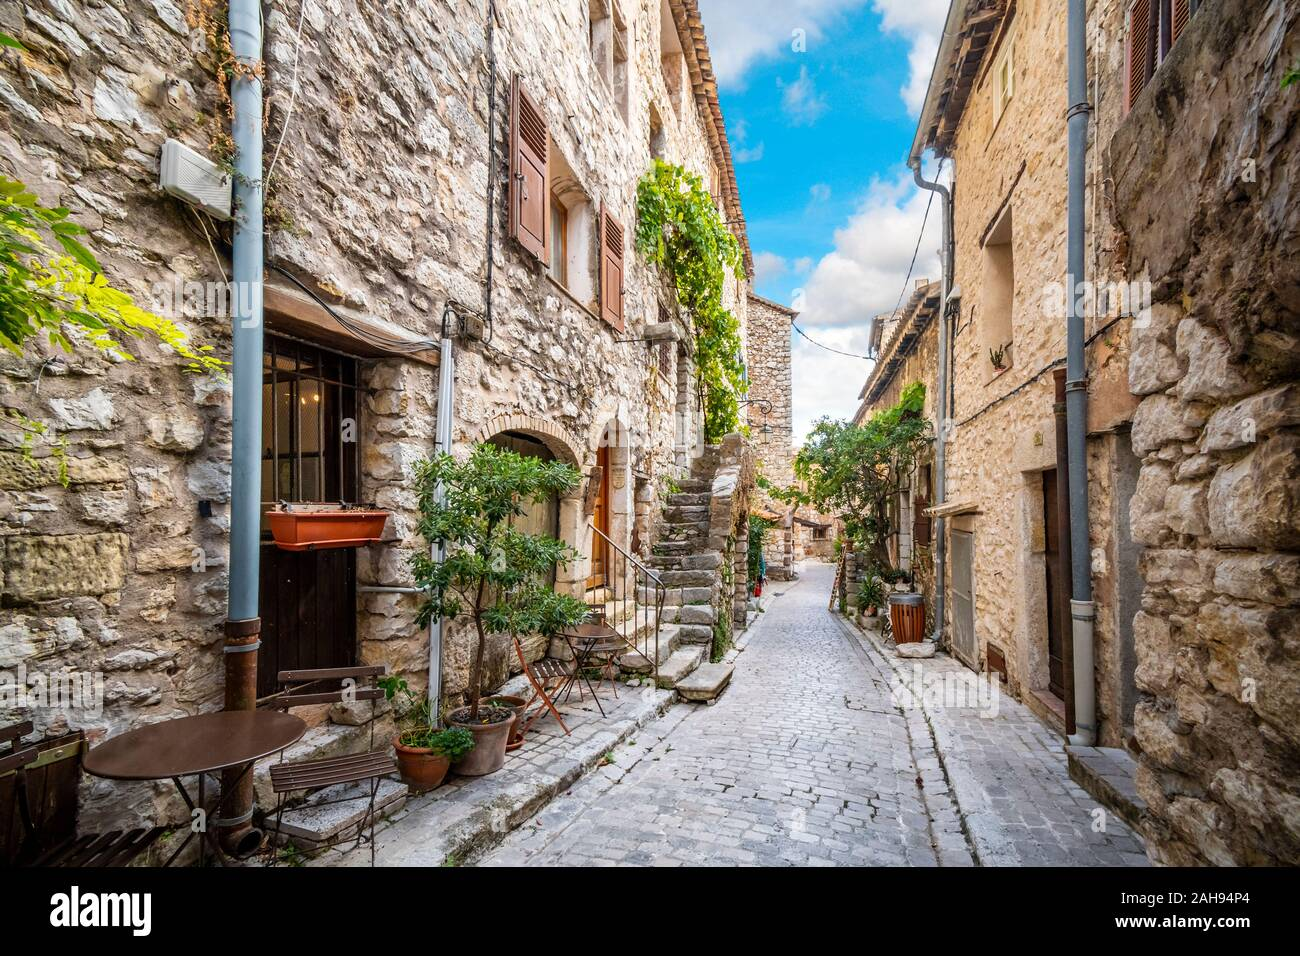 A picturesque back street of homes and apartments in the medieval village of Tourrettes Sur Loup in the Alpes Maritimes area of Southern France. Stock Photo